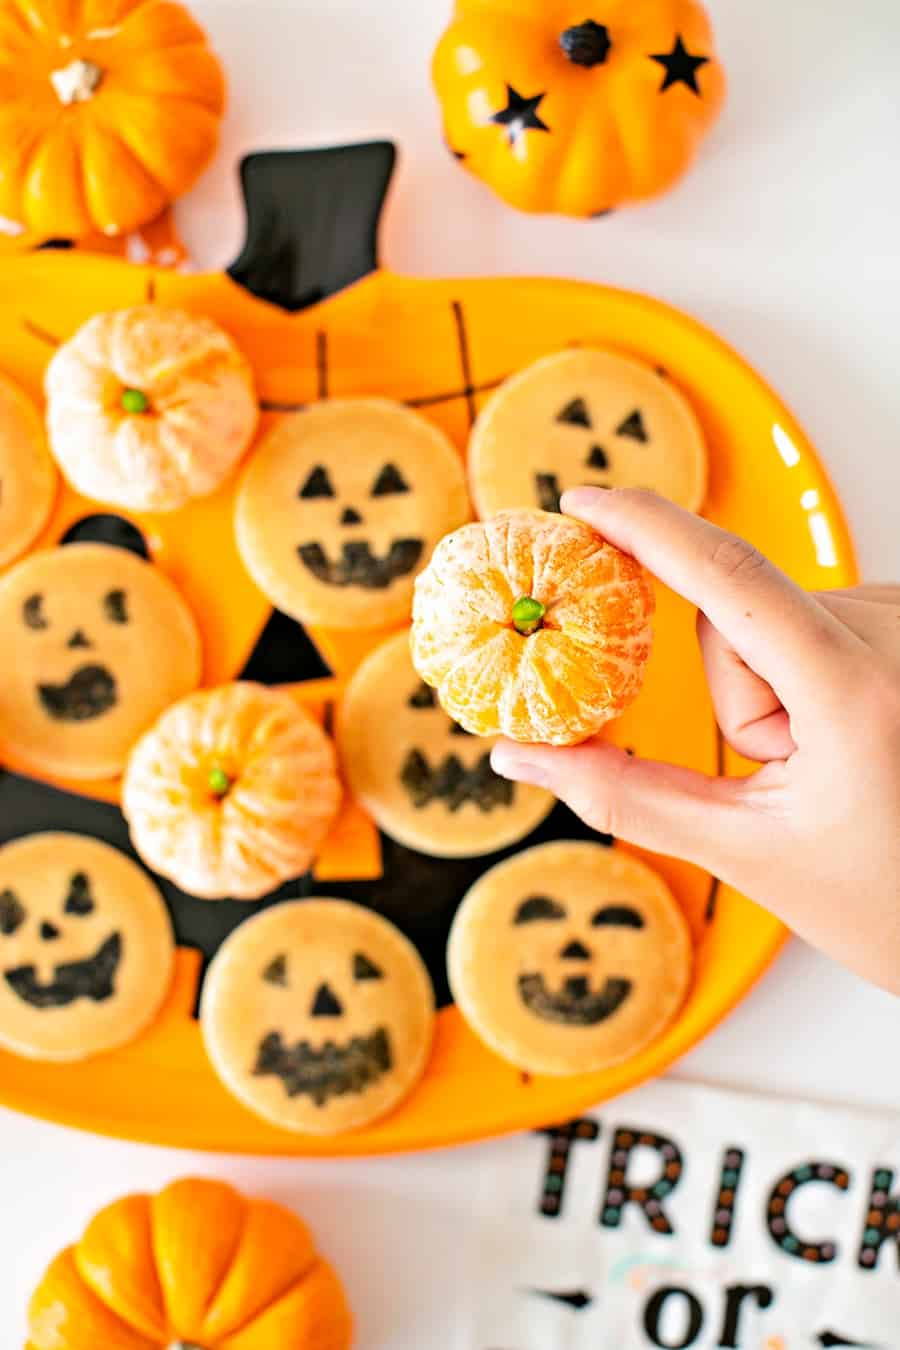 These Easy Halloween Pancakes Make a Spooky Breakfast for Kids